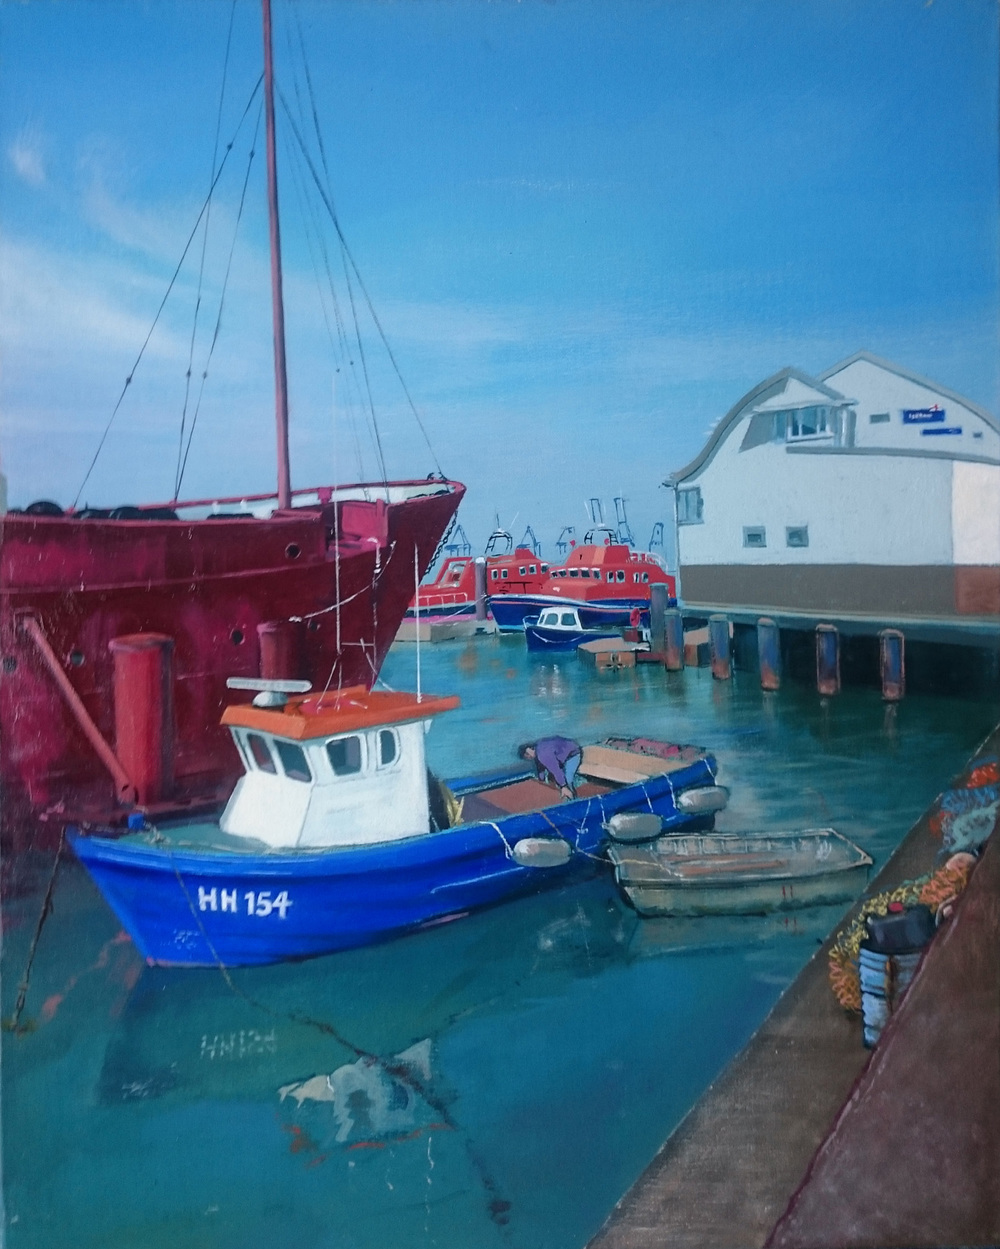 Harwich 13 50 x 40 cm oil on canvas £650